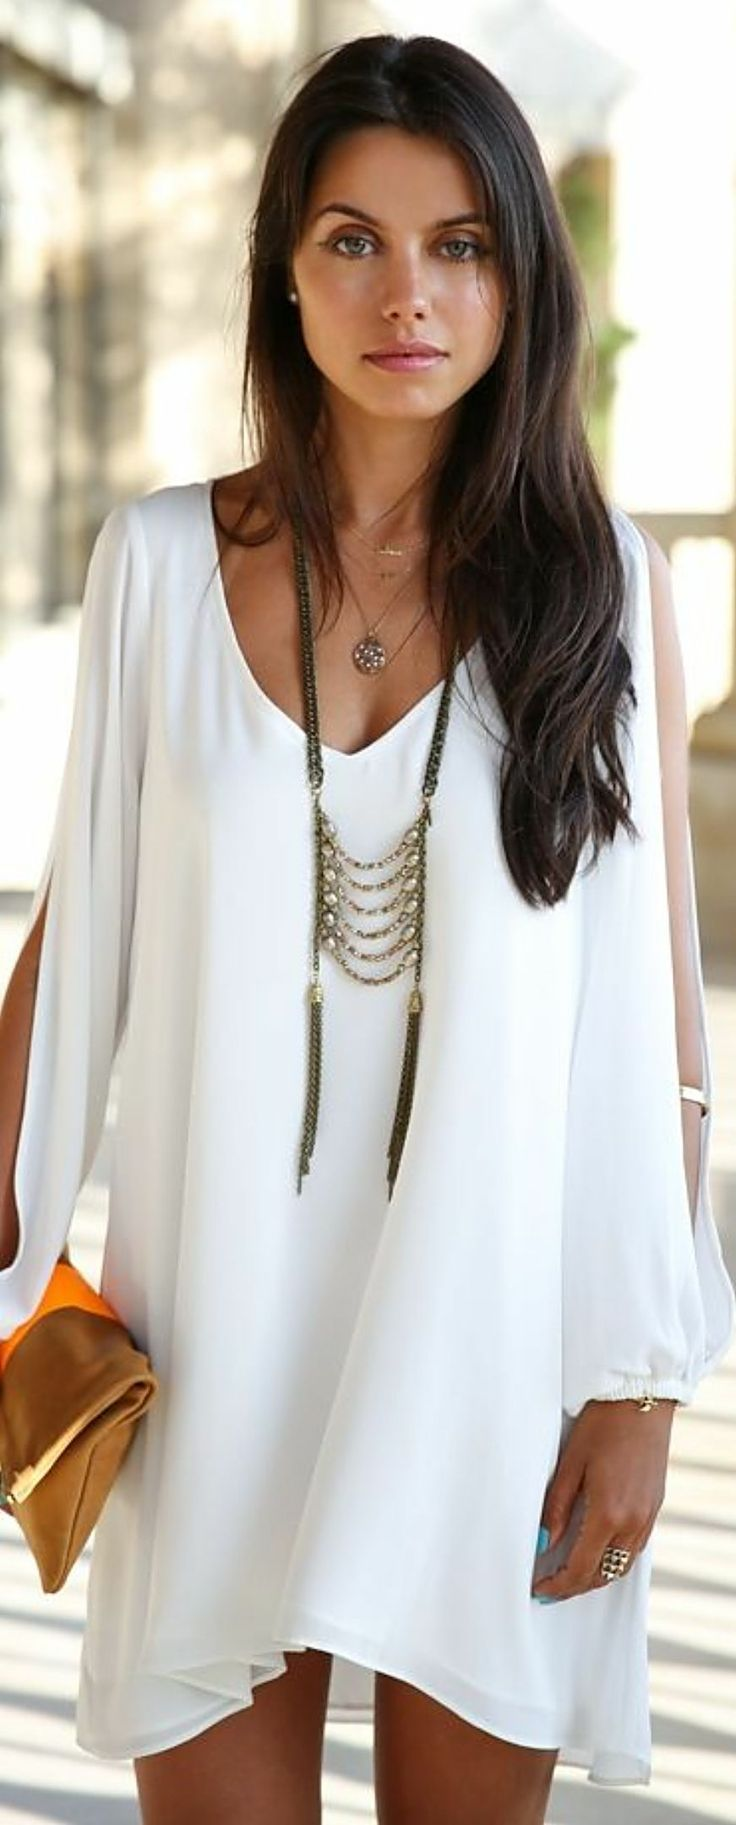 Not loving the open sleeves, but love the simplicity of the white shift dress with a long necklace and pair of sandals or flats. Great for work, date night and vacations. Always have problems with white dressed being see-through though.